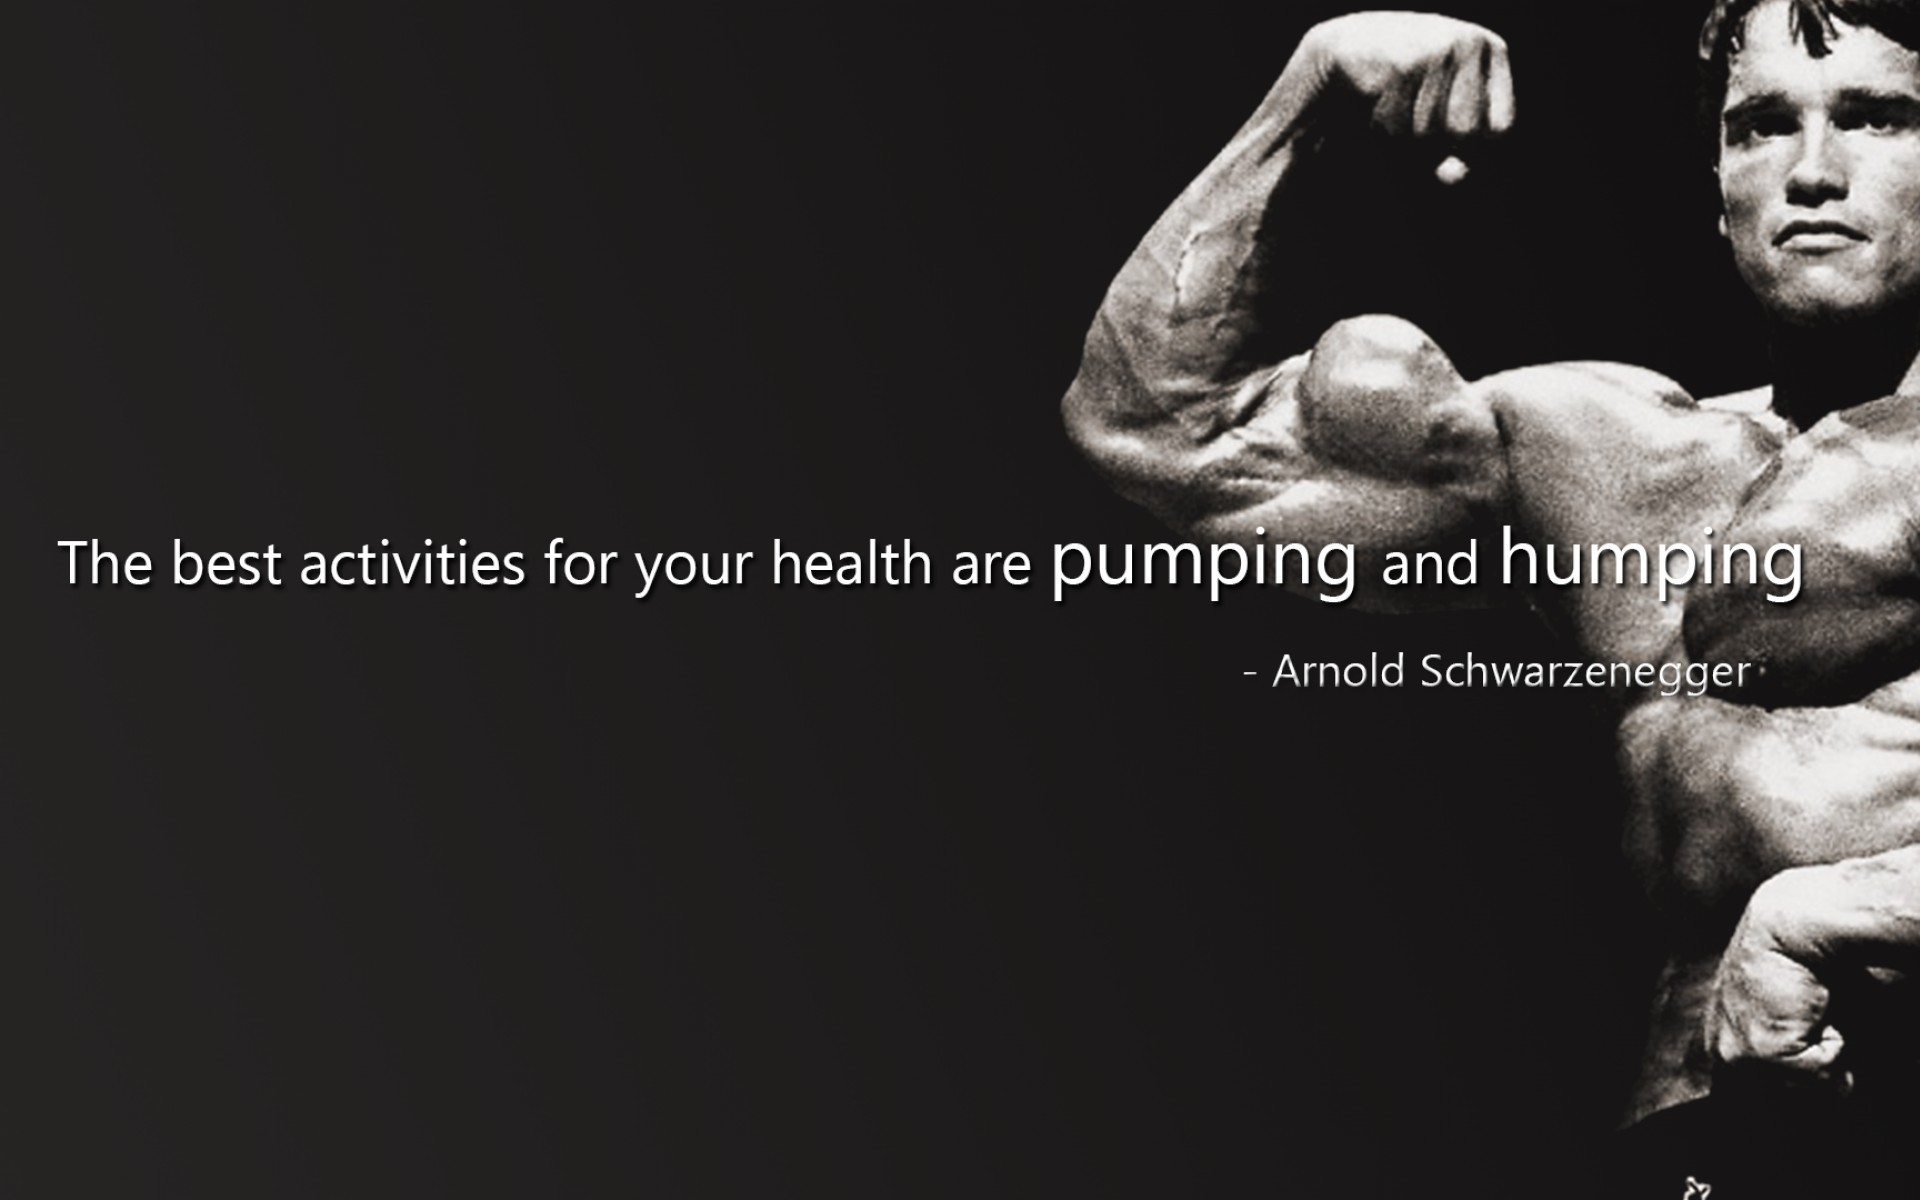 Arnold motivational wallpapers 79 images 1920x1200 arnold motivational quotes wallpaper by charles spurgeon malvernweather Gallery